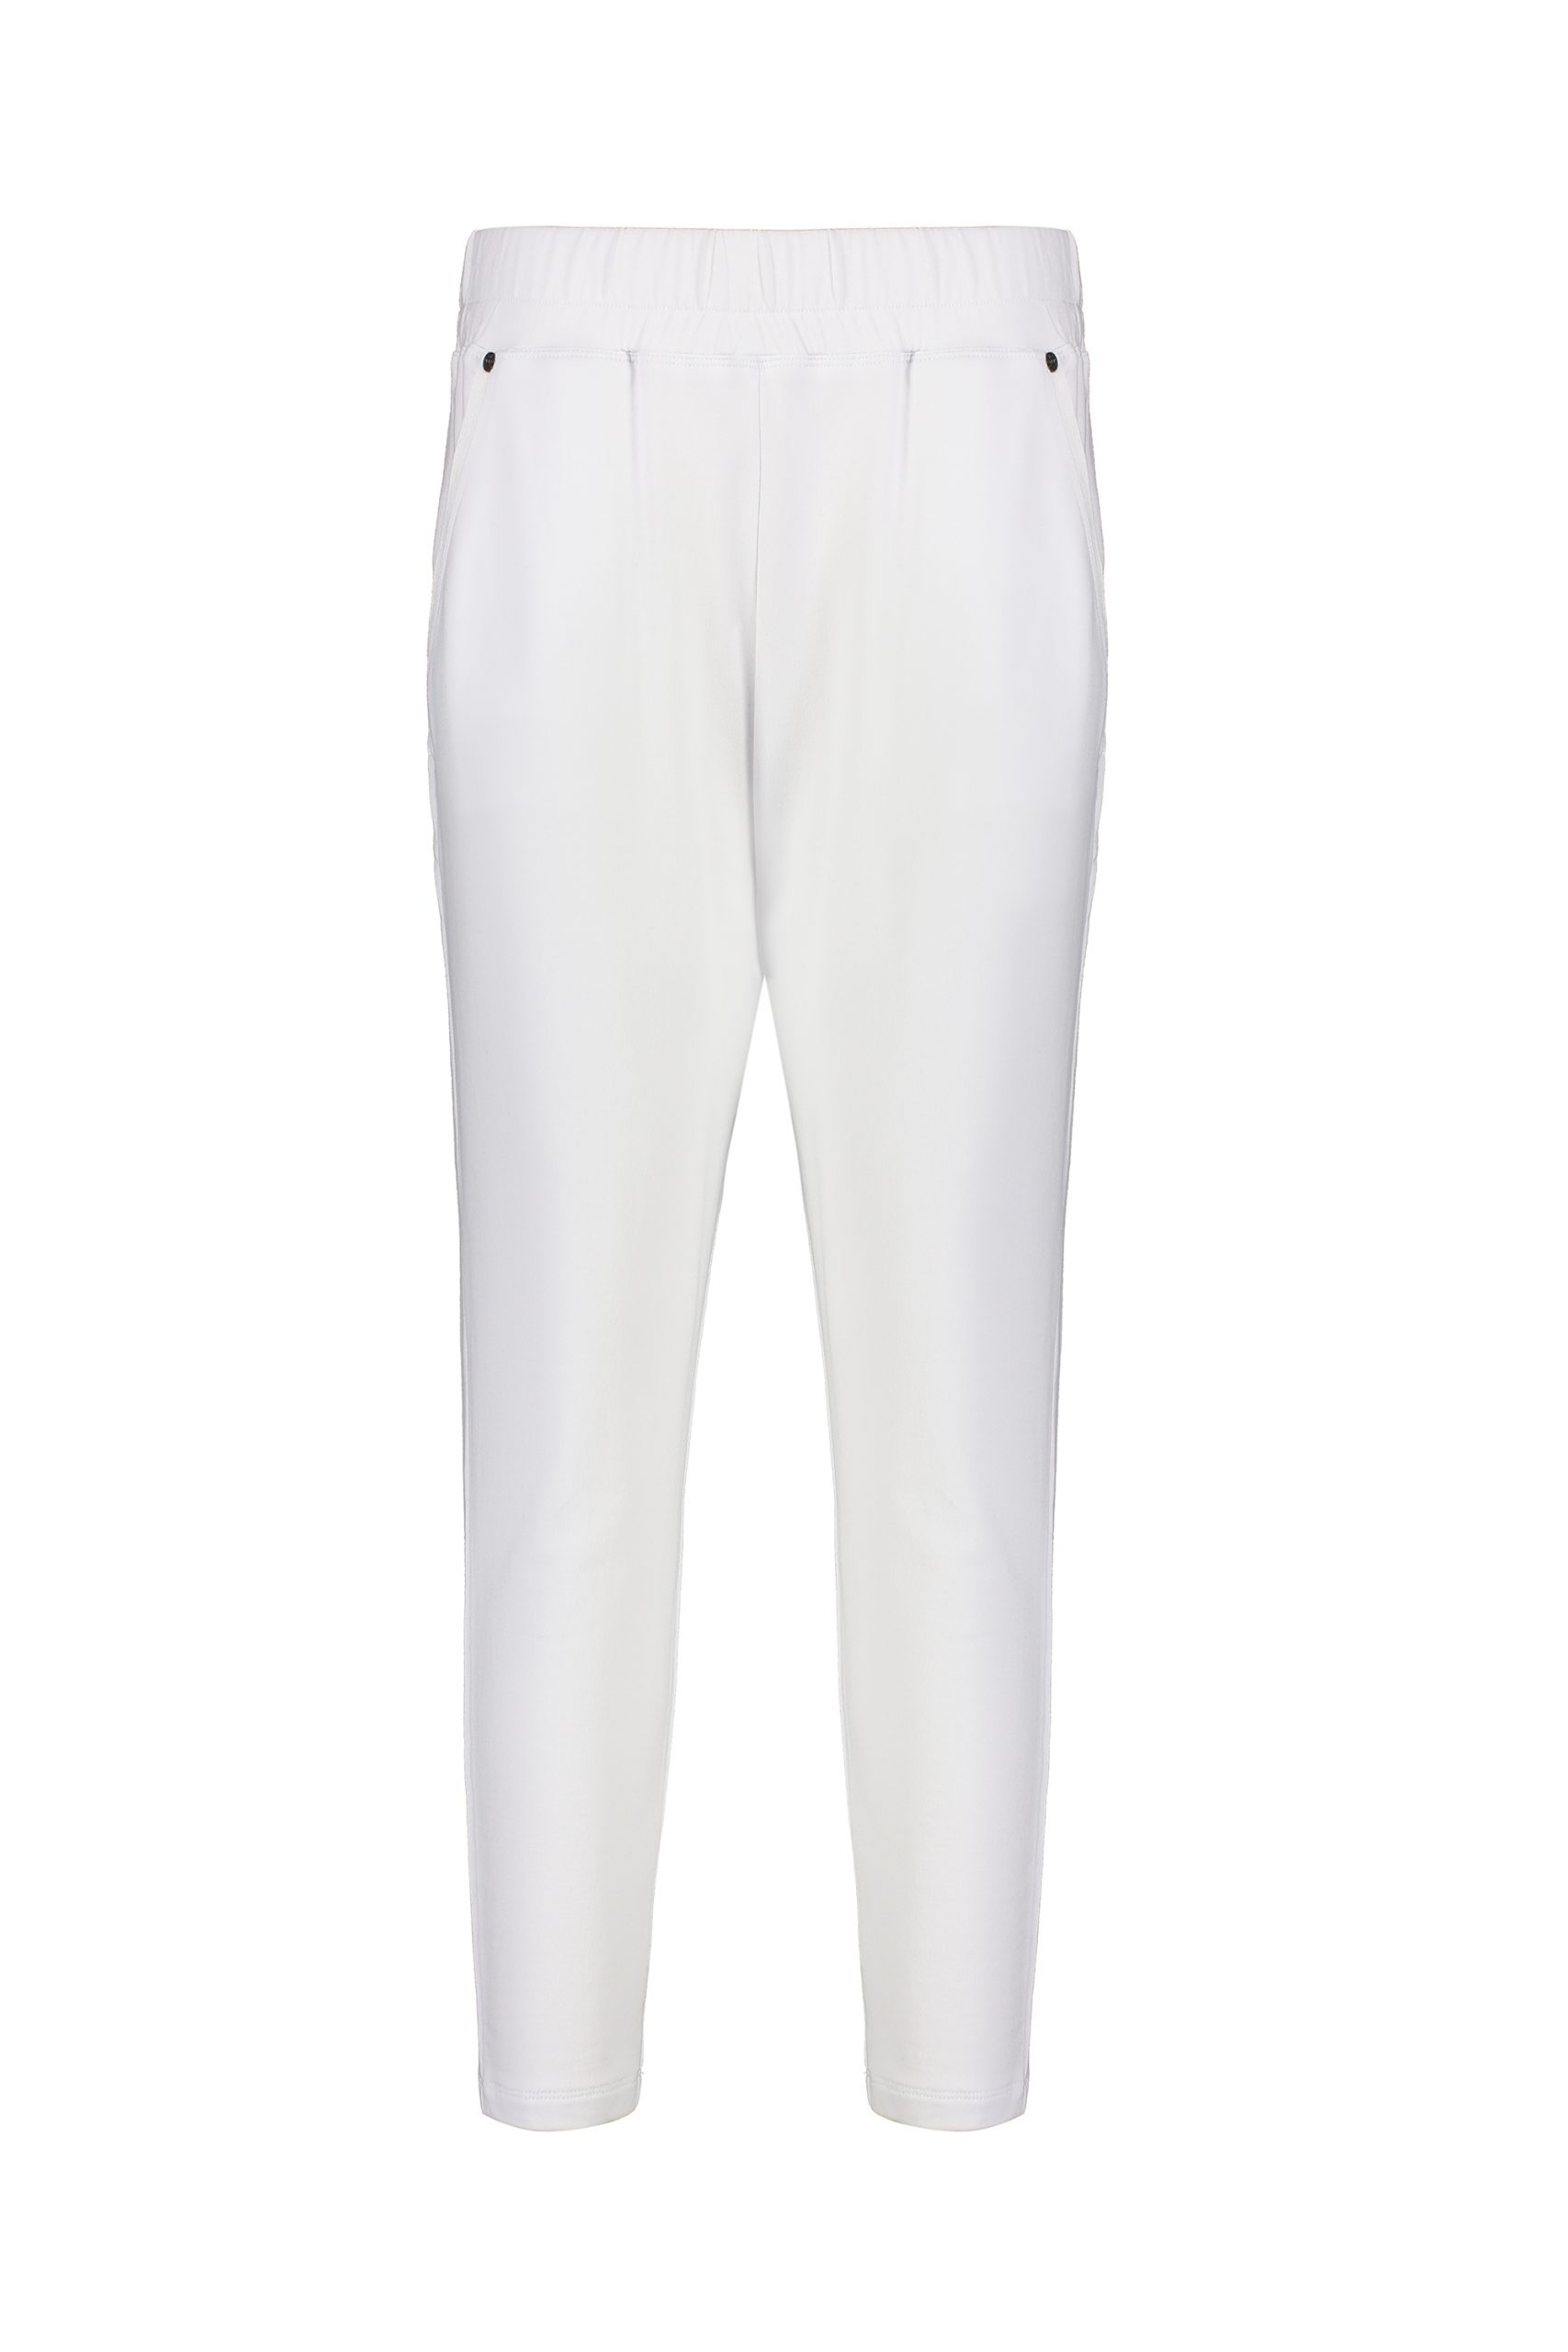 7364SF TRIBE PANT WHITE